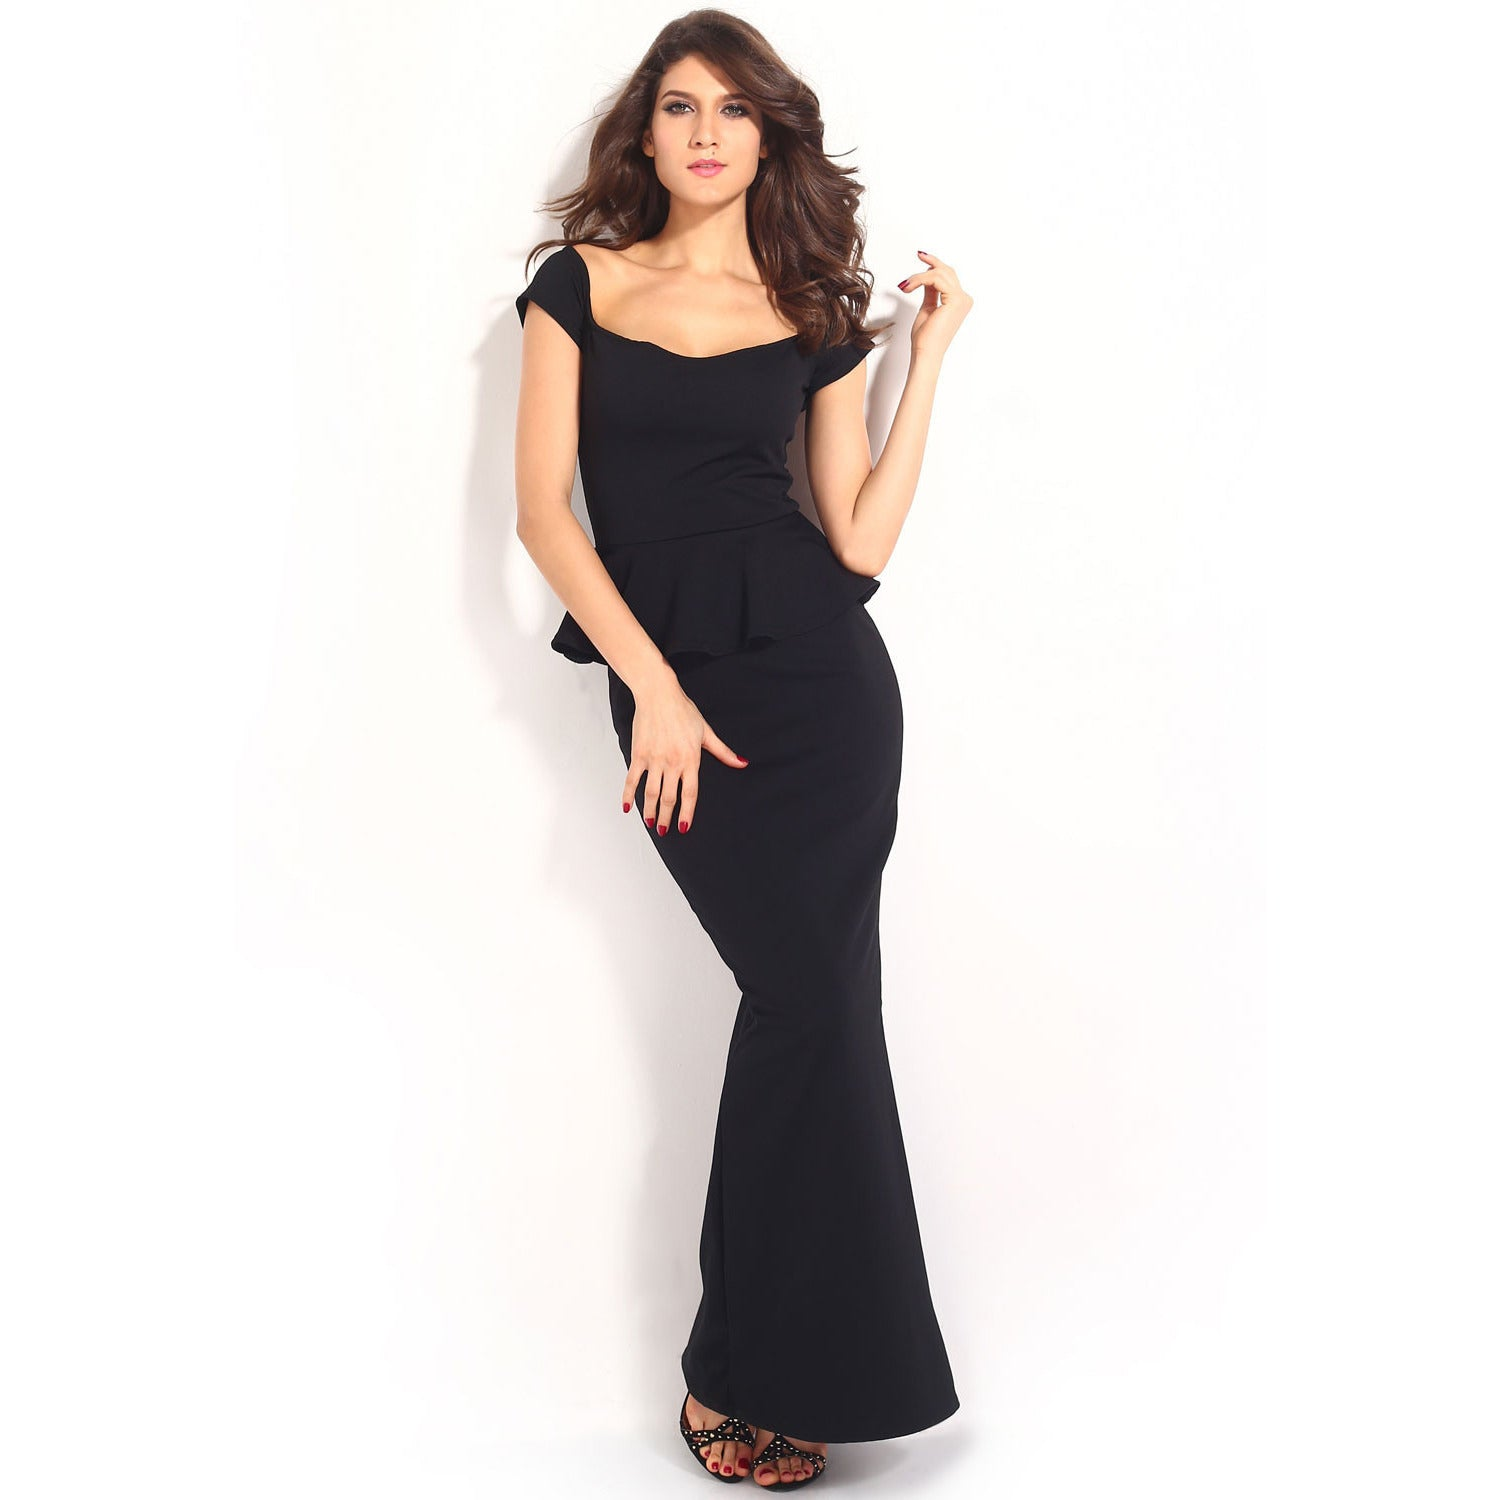 Black Peplum Maxi Dress With Drop Shoulder LAVELIQ - LAVELIQ - 4